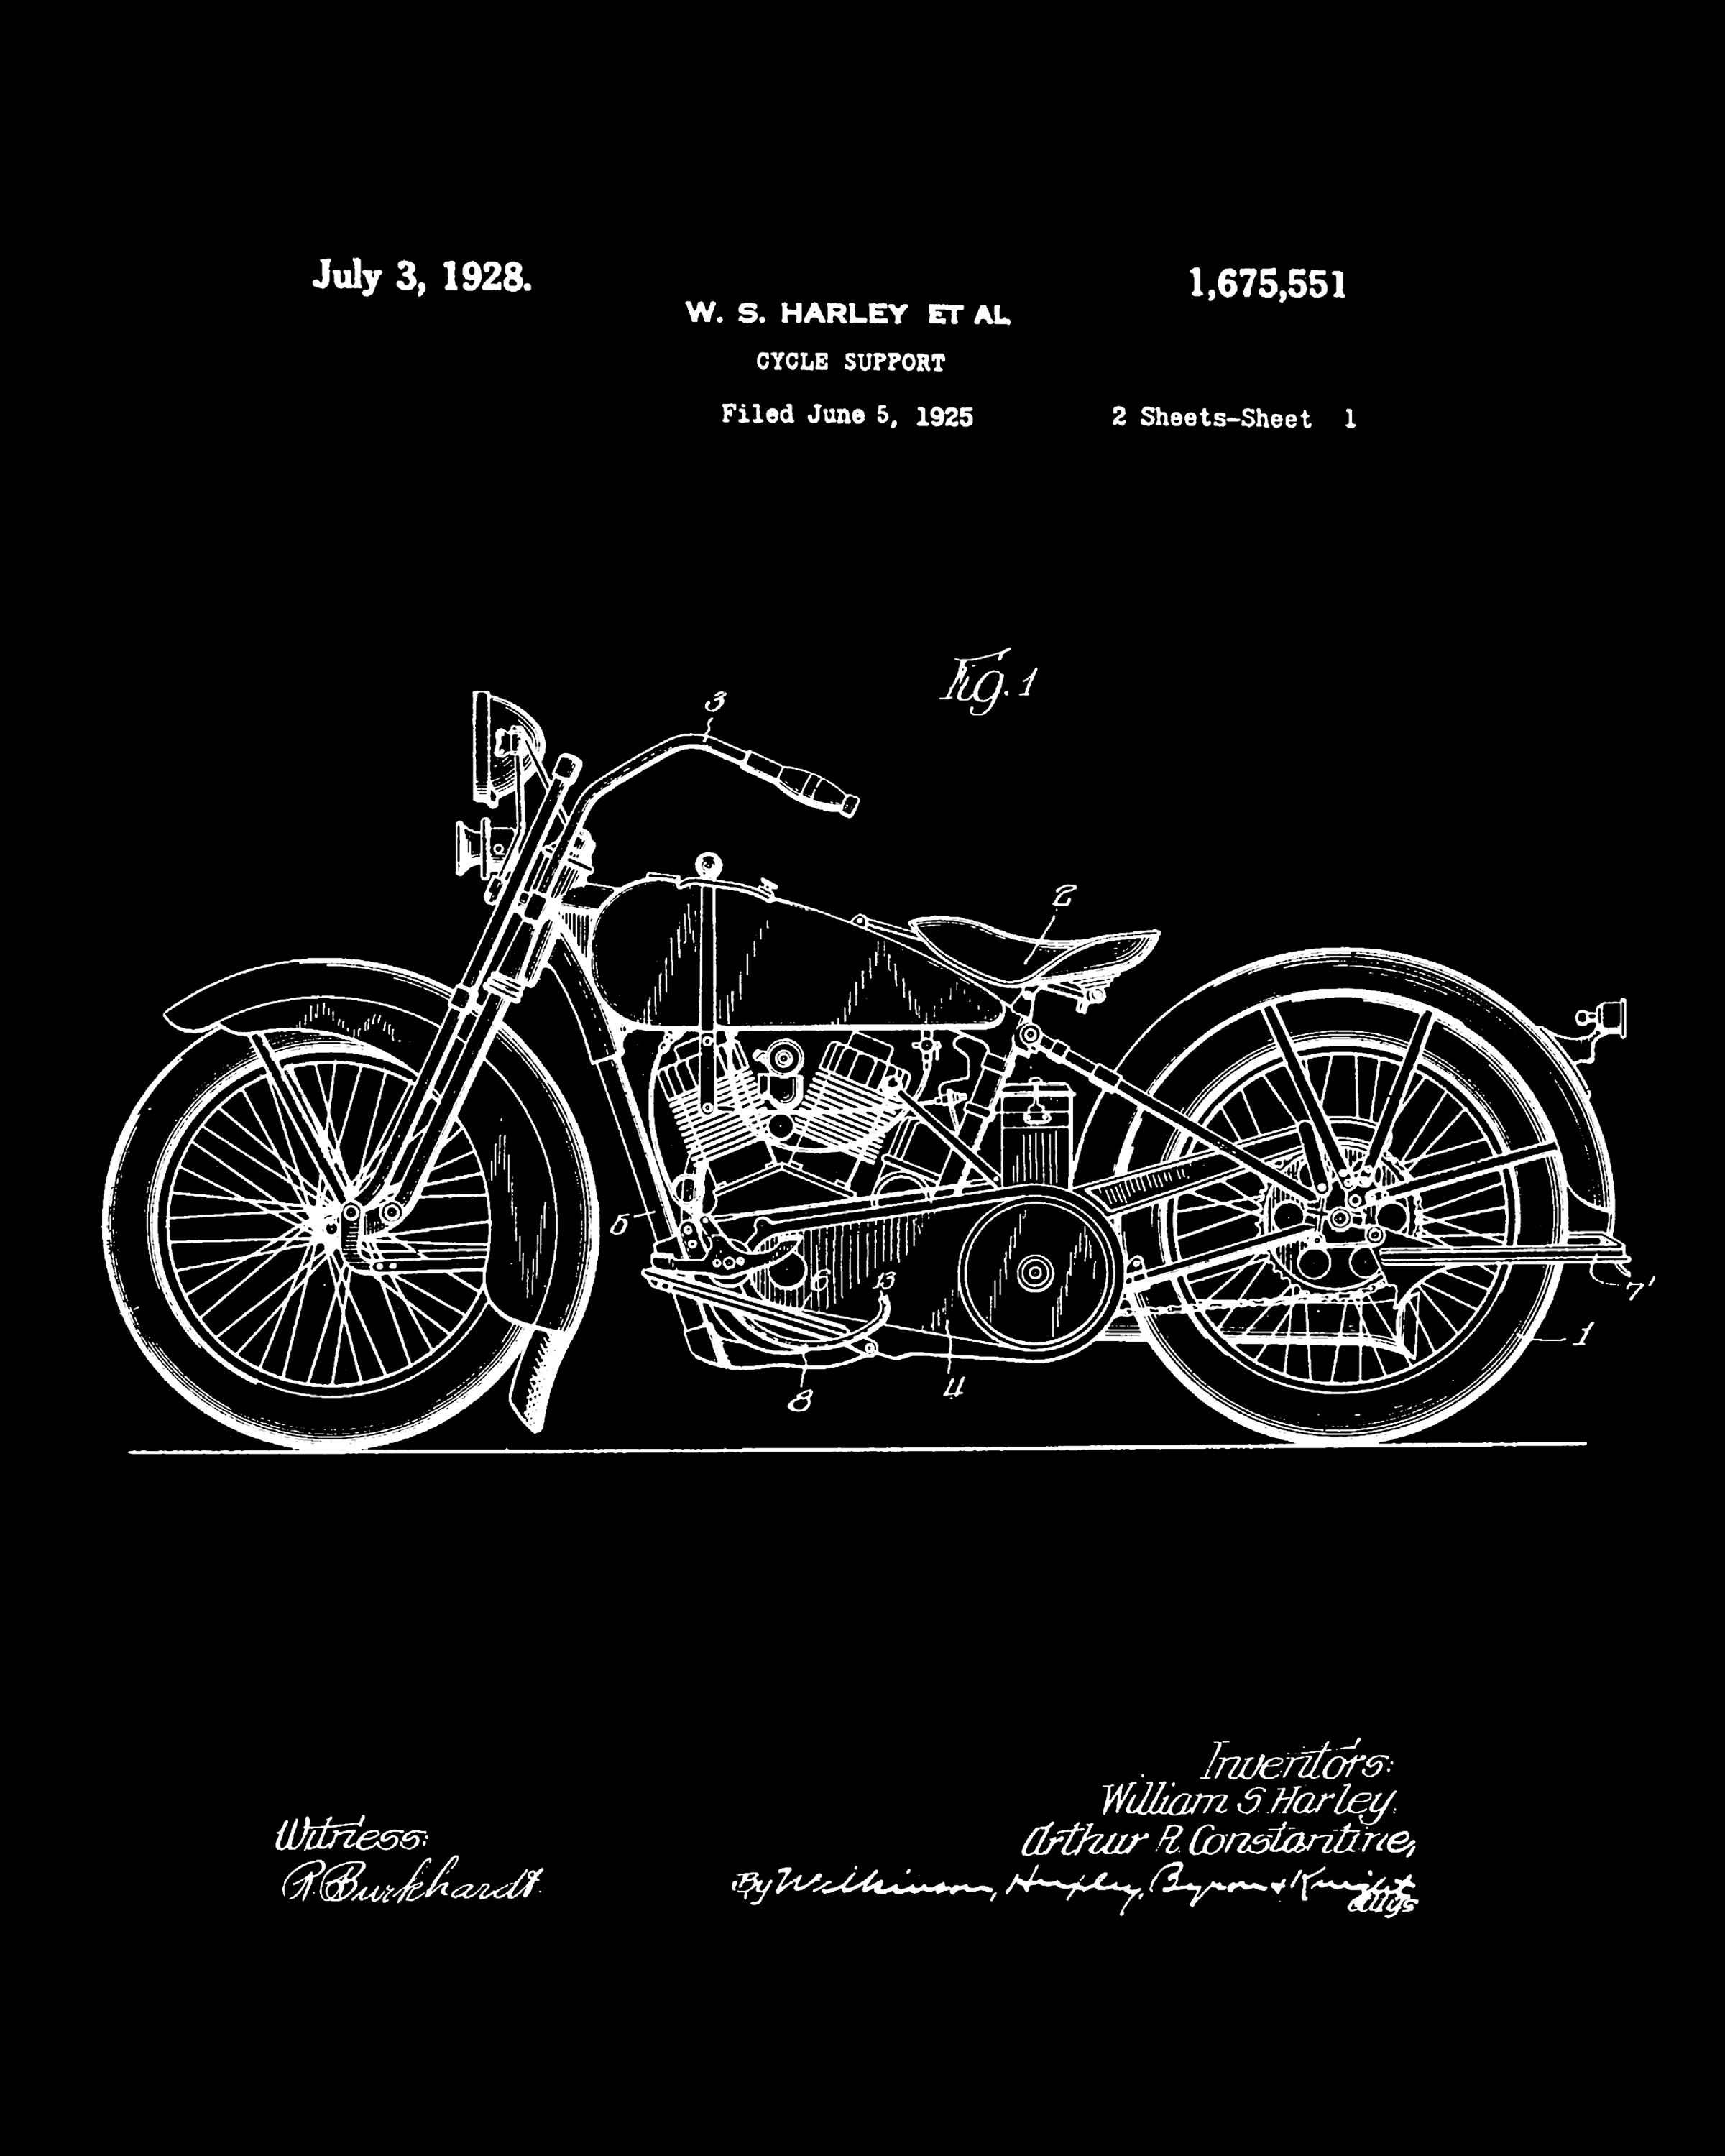 e091ae9a Harley Davidson blueprint Downloadable on Etsy to print on your home  printer. The one you download will be in high resolution for the perfect 10  x 8 print.